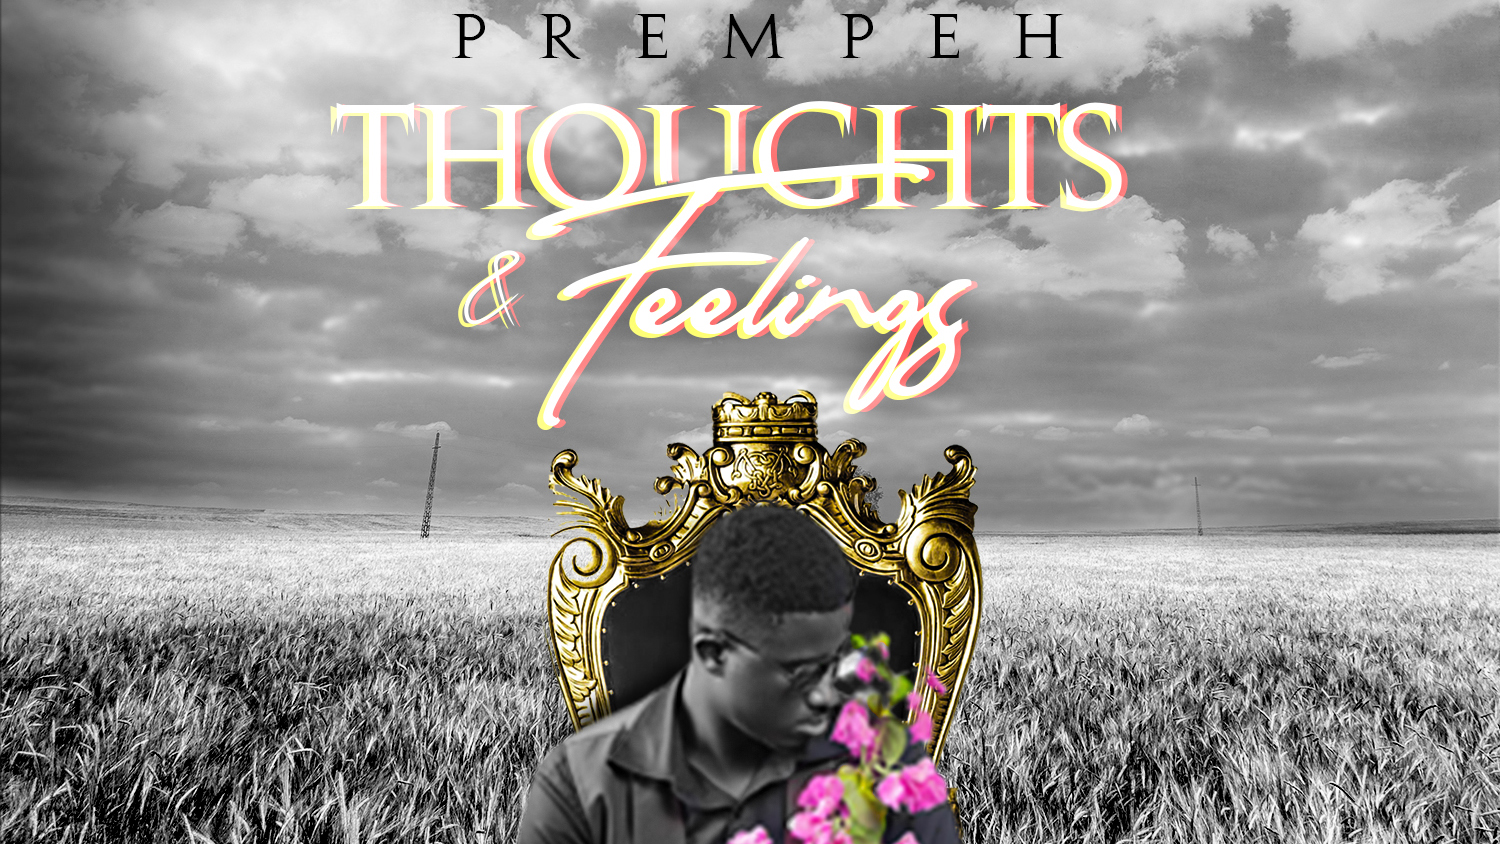 Prempeh set to release maiden EP; Thoughts & Feelings